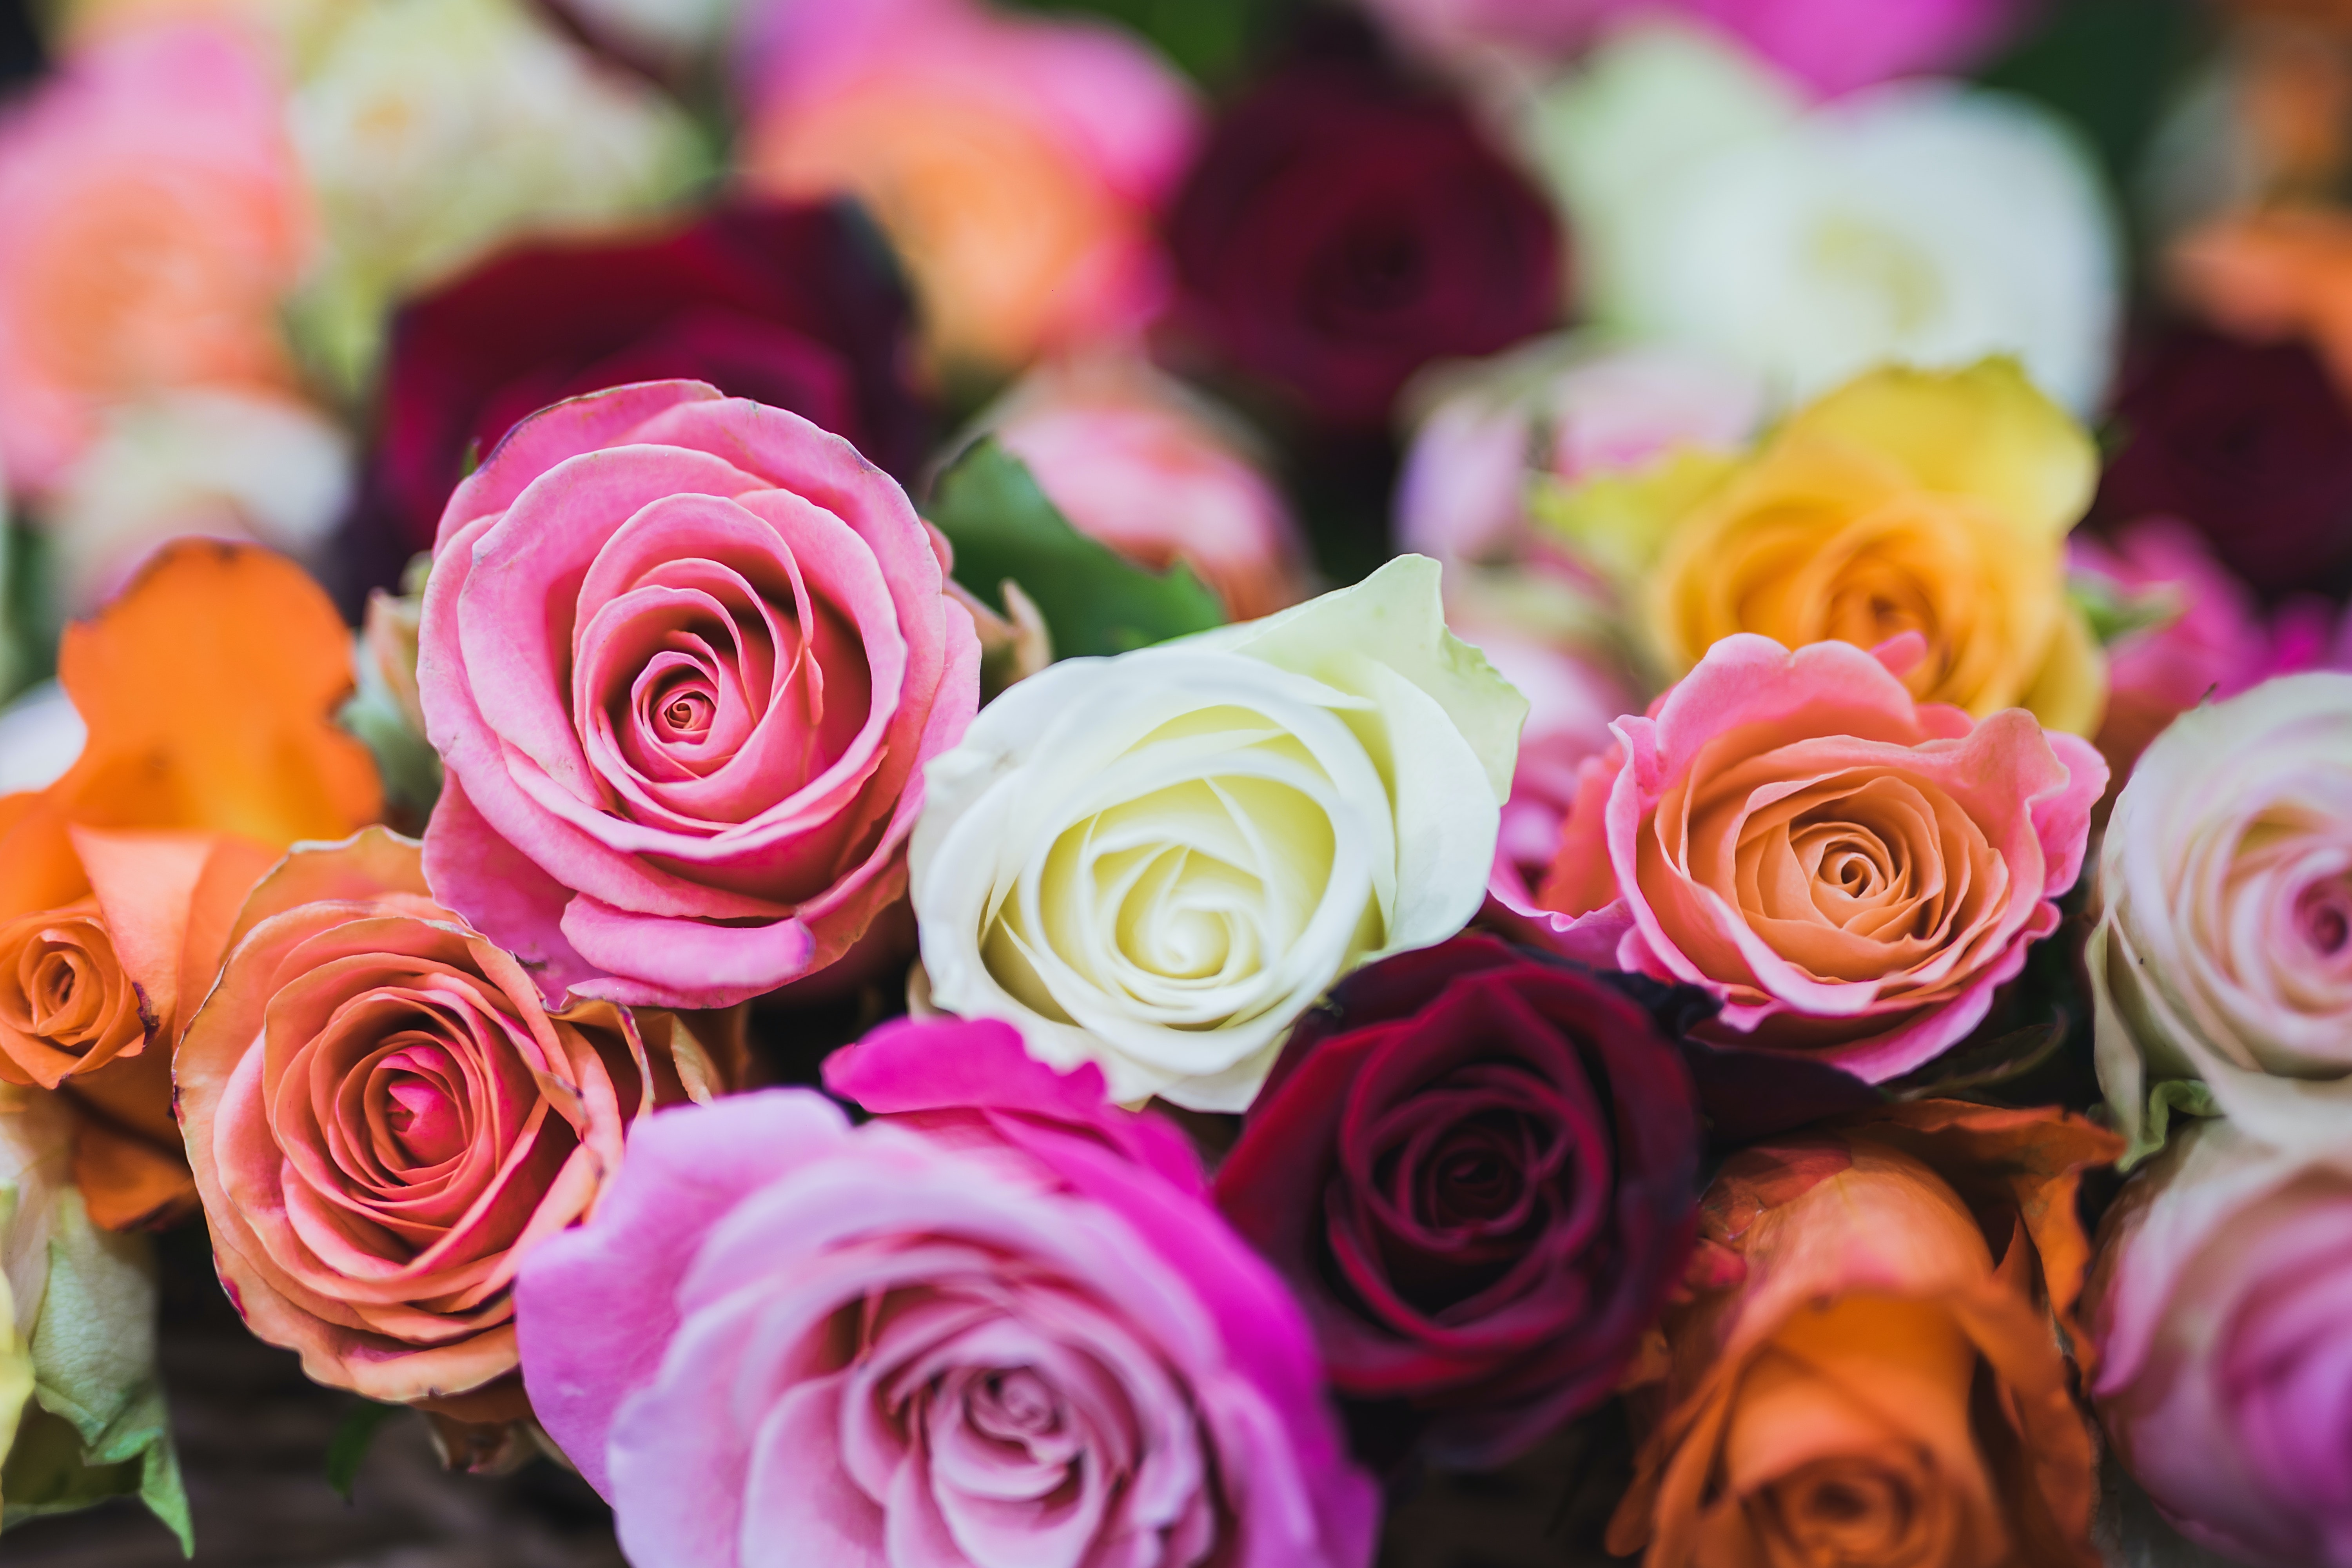 Assorted Color Of Rose Flowers Free Stock Photo